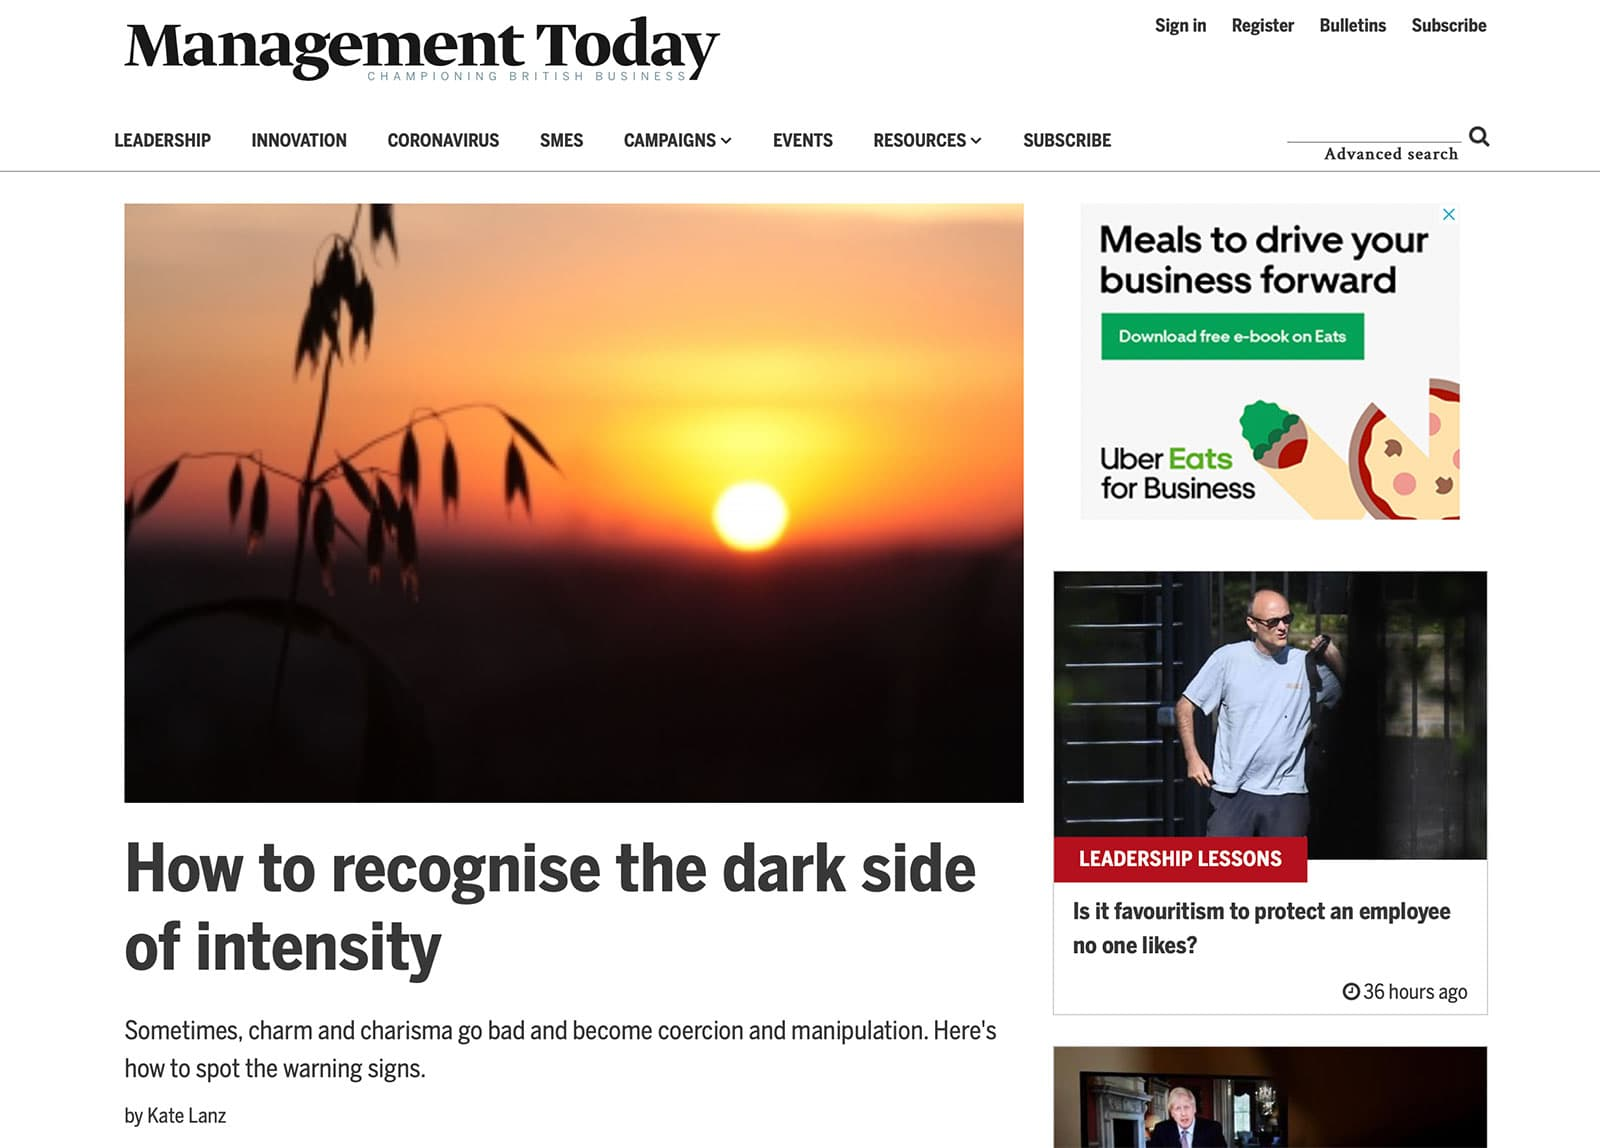 Management Today article by Kate Lanz